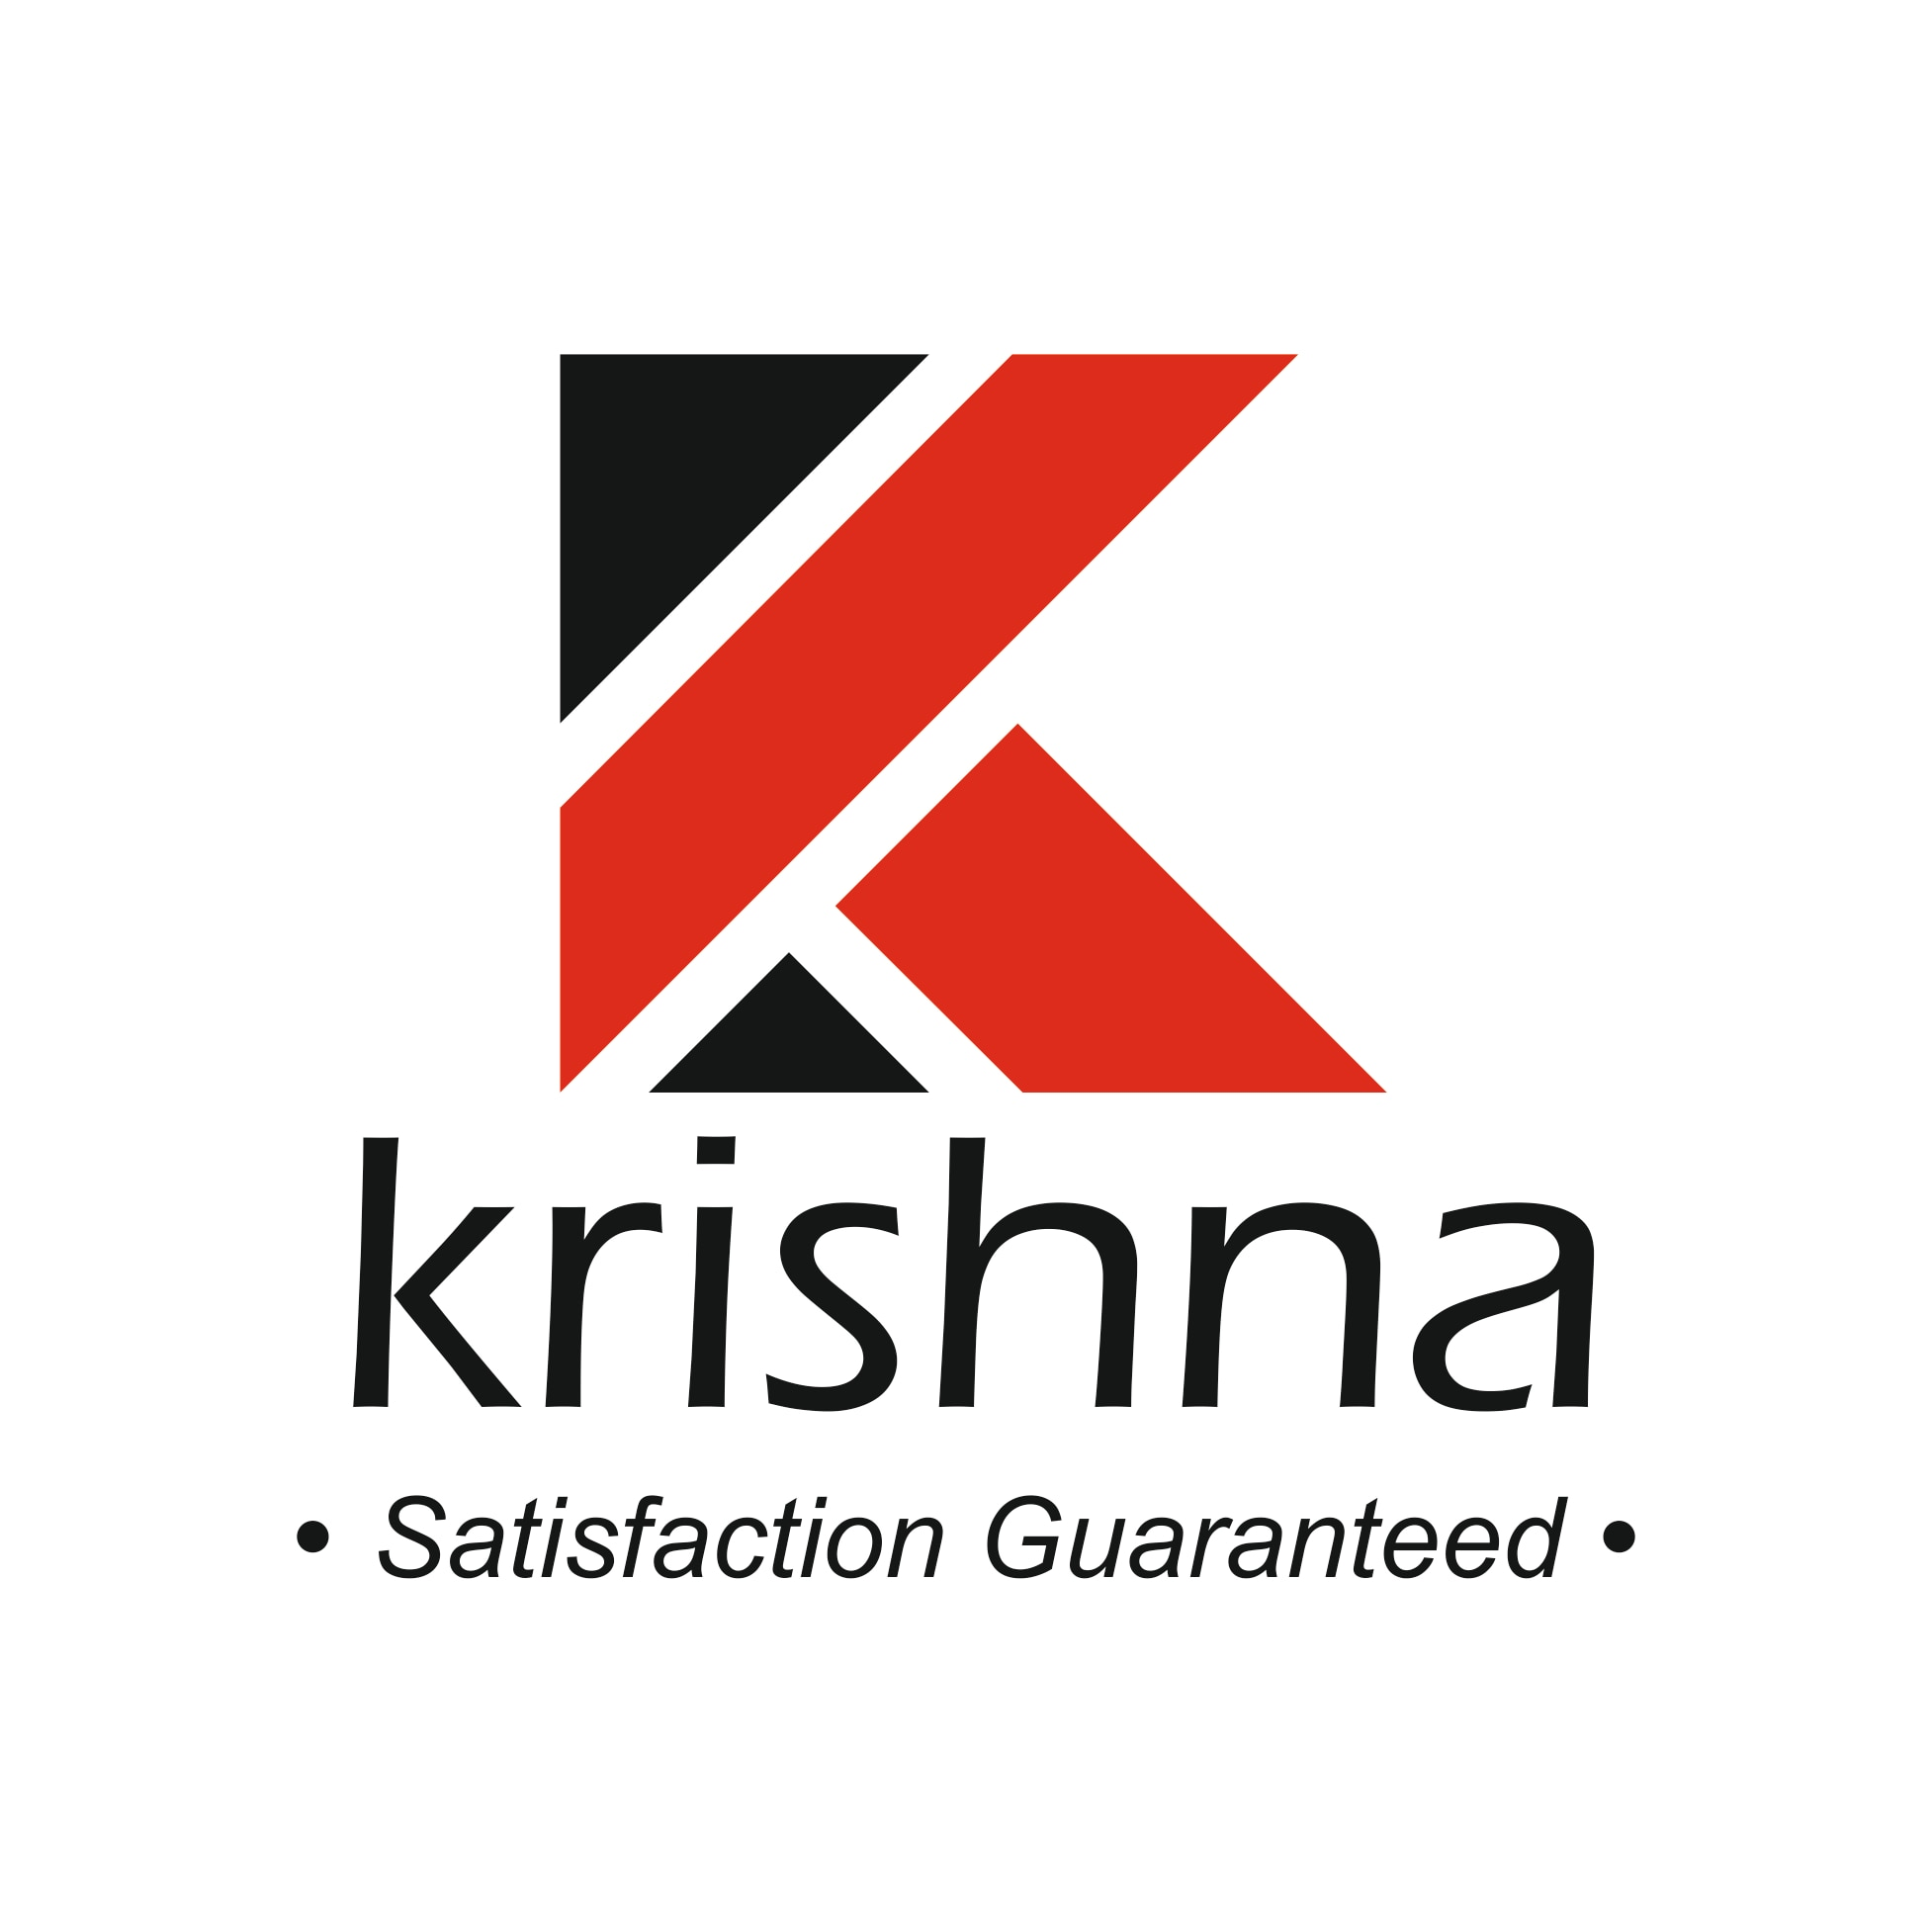 krishna logo name images galleries with a bite. Black Bedroom Furniture Sets. Home Design Ideas